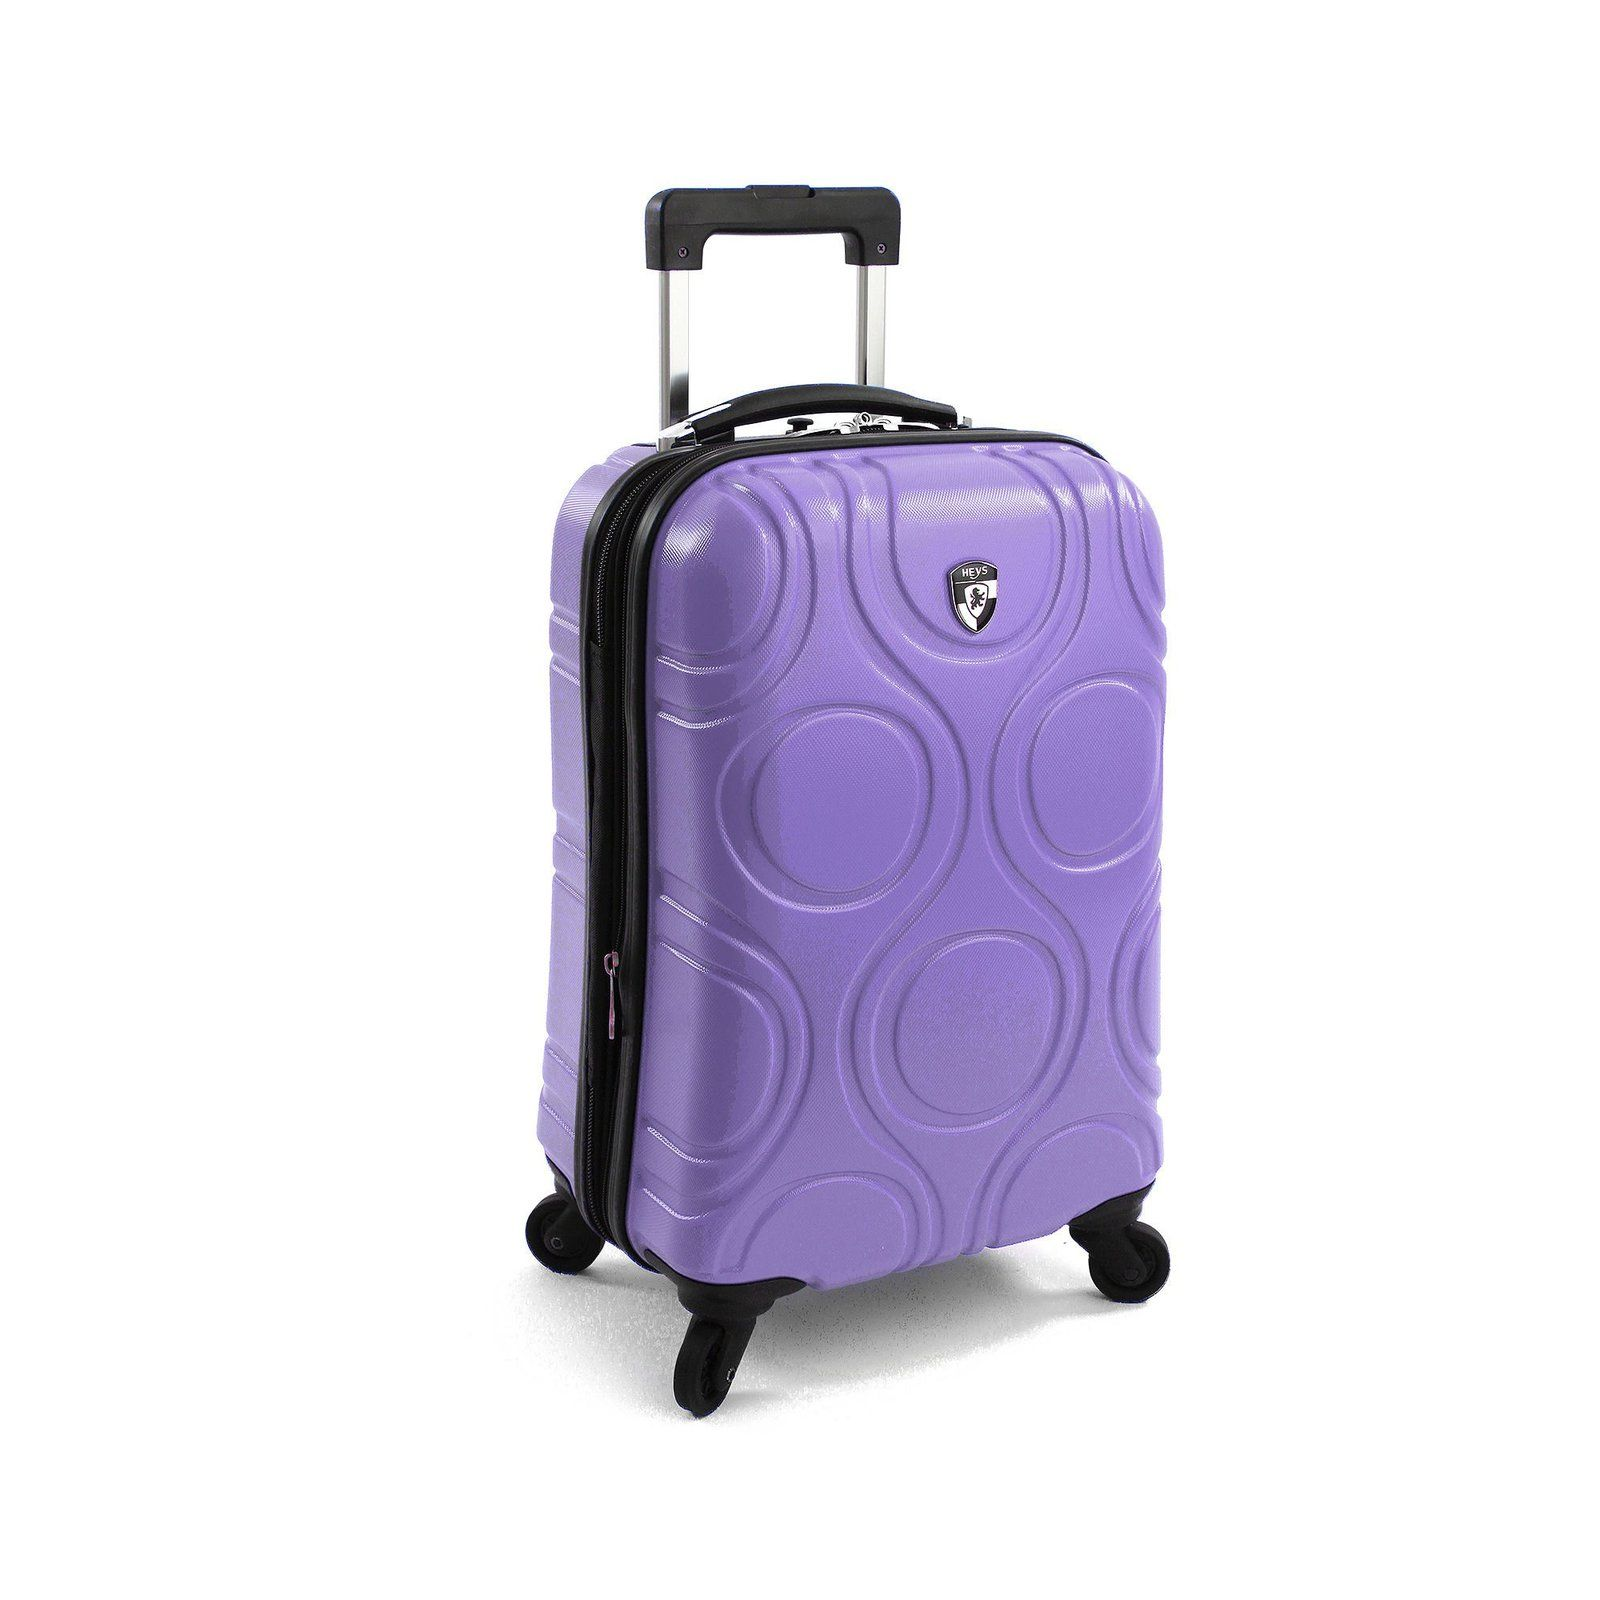 "Eco Orbis 21.5"" Spinner Suitcase Color: Lilac"